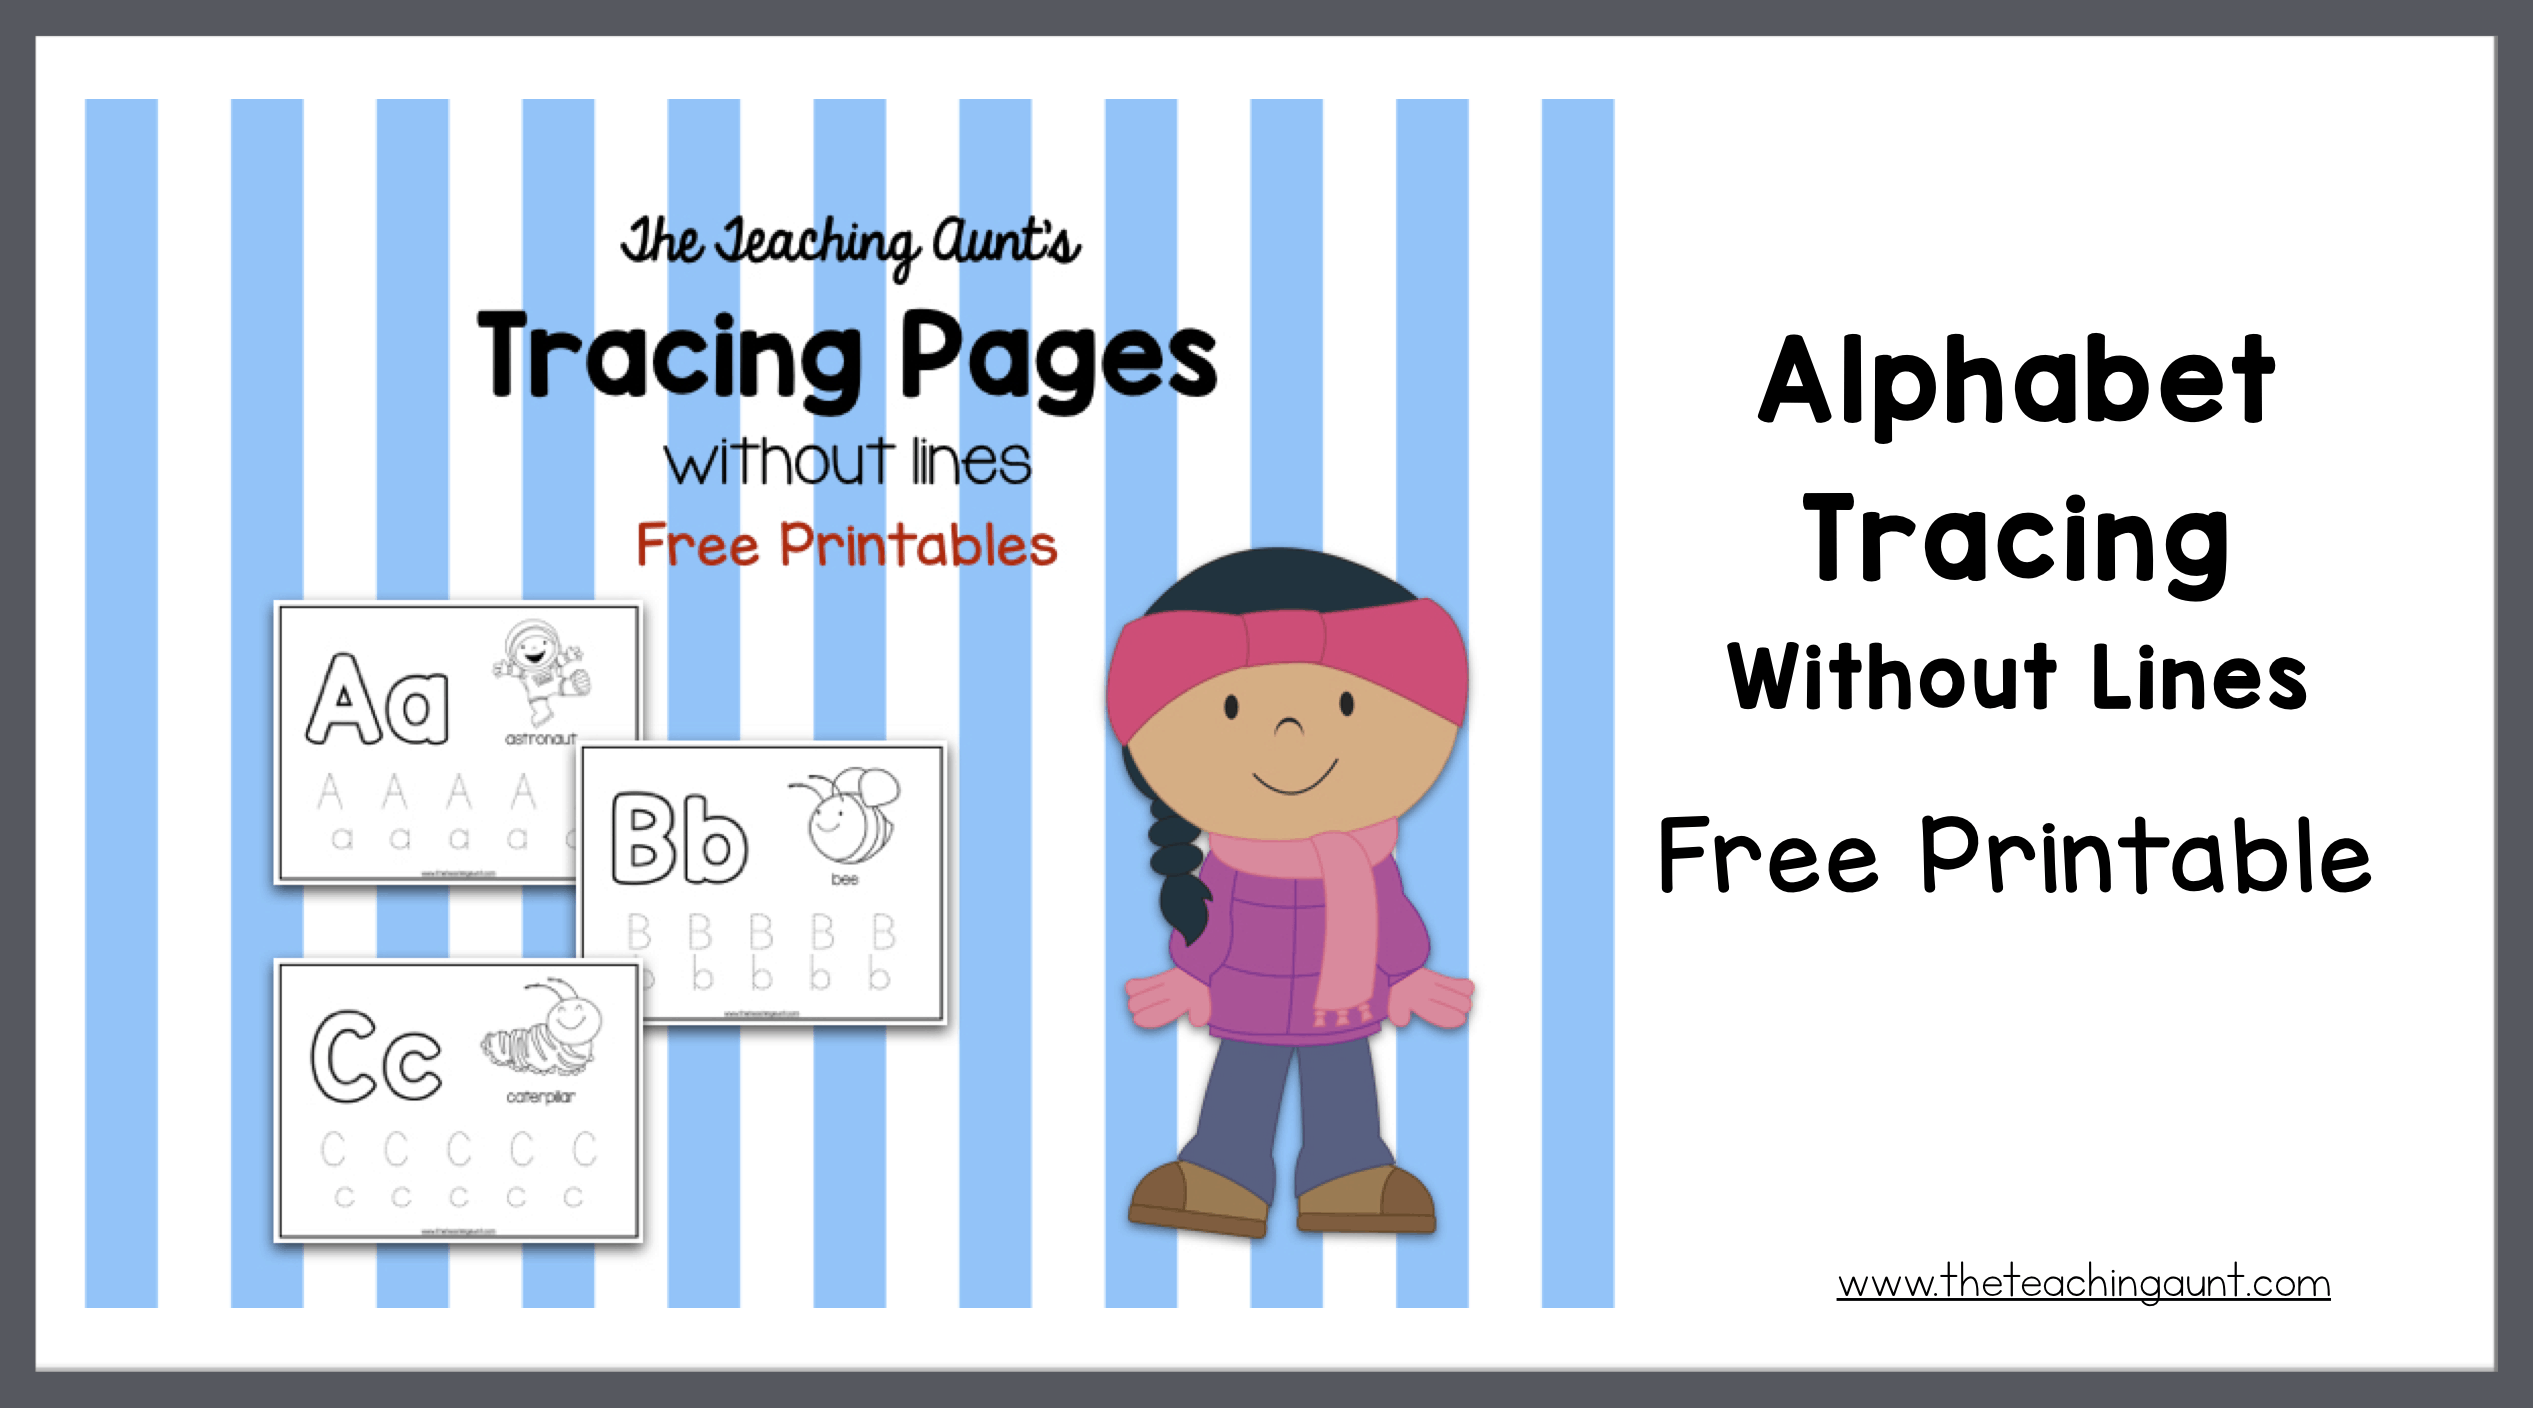 Alphabet Tracing Without Lines Free Printable